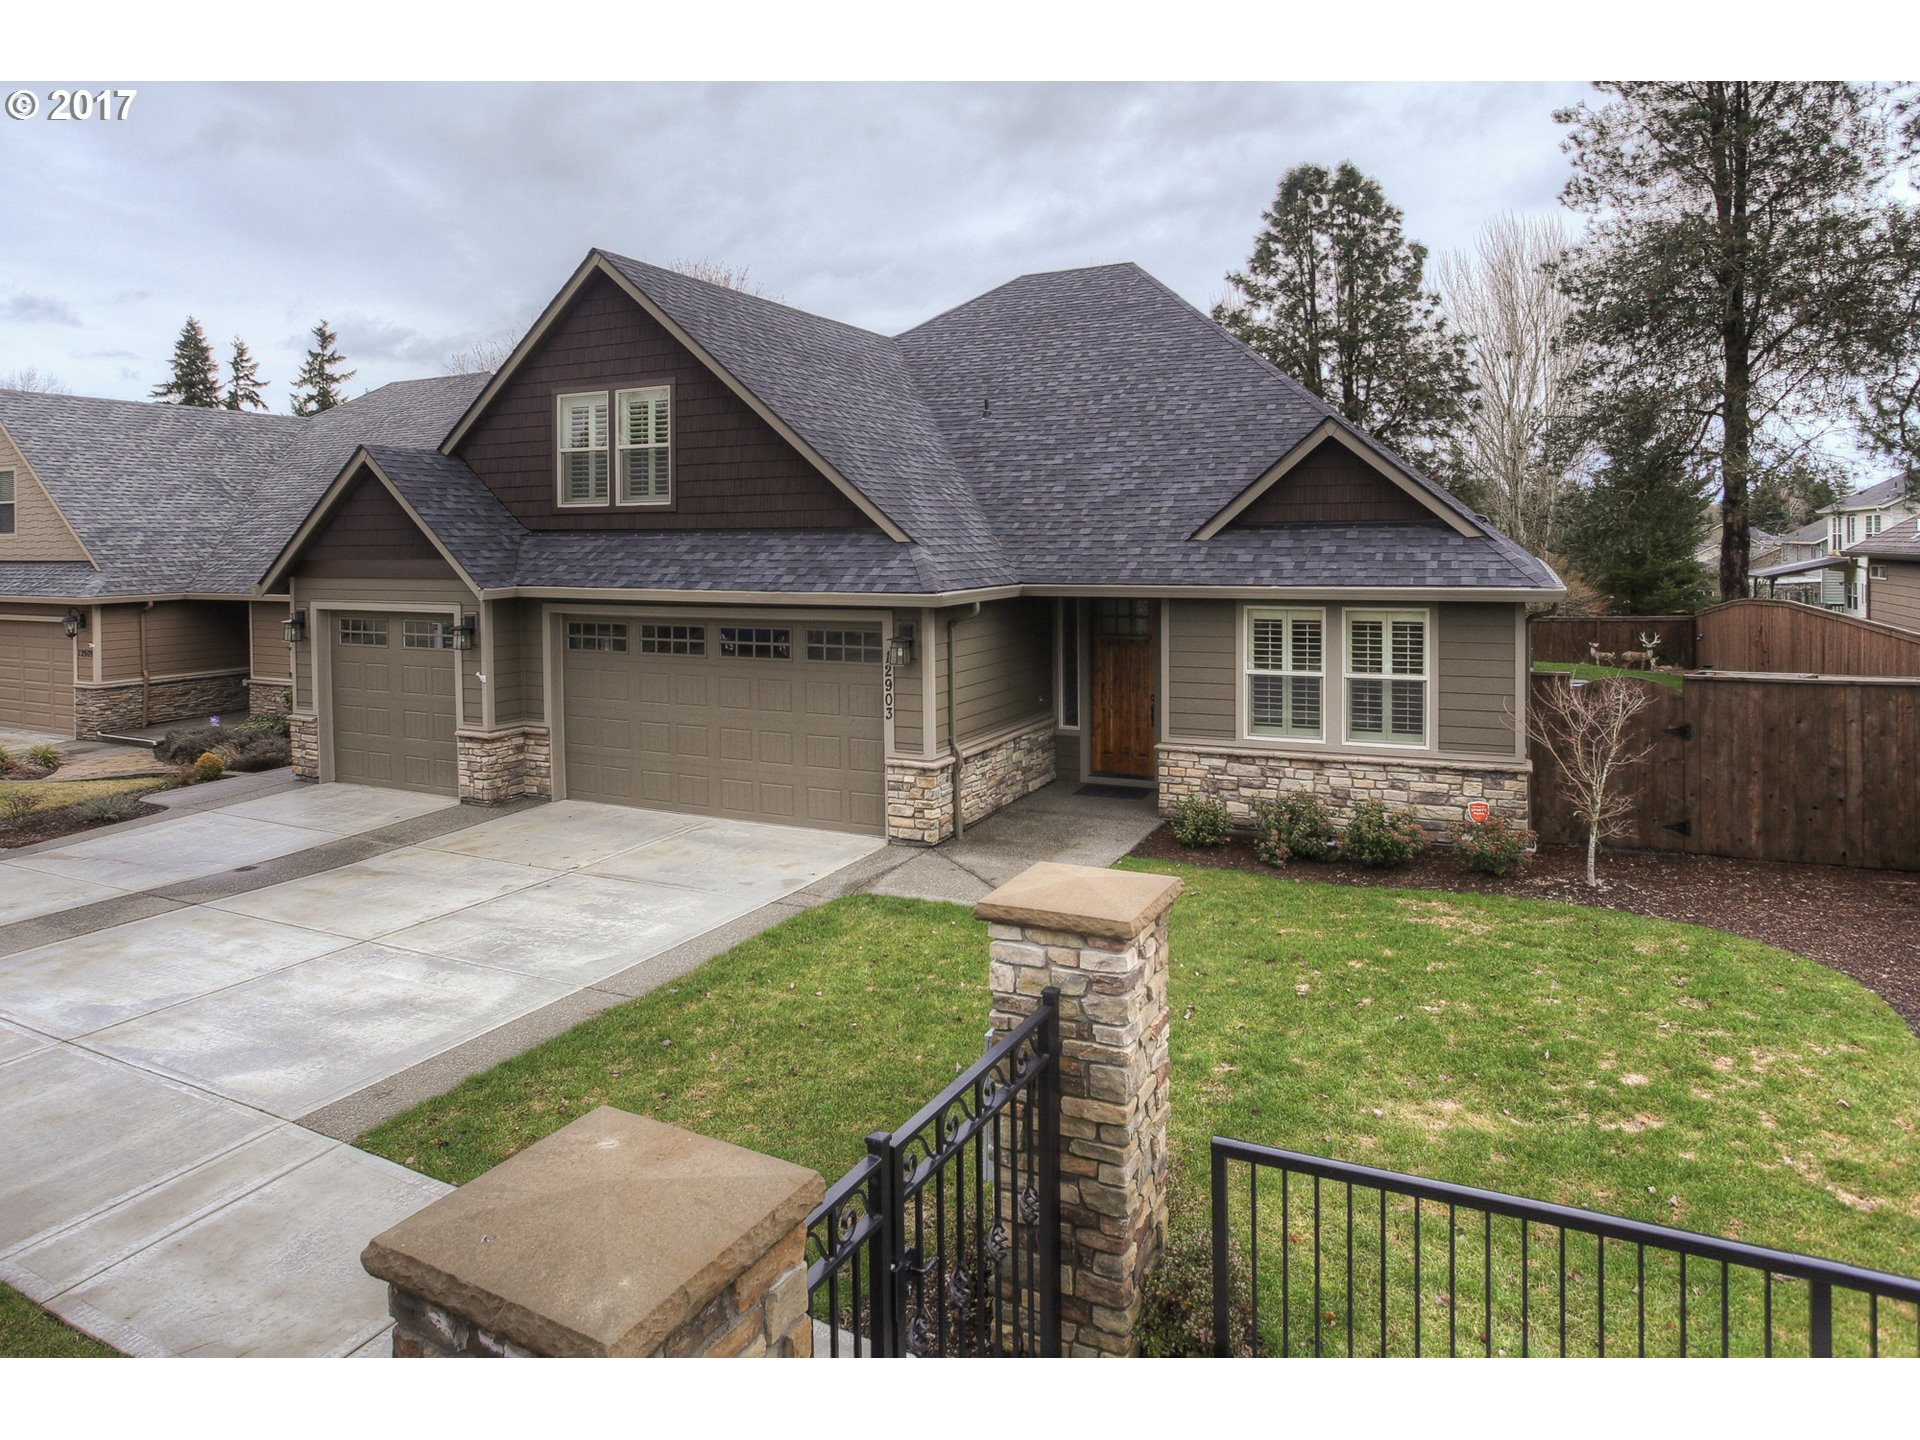 12903 NW 49th Ave, Vancouver, WA 98685